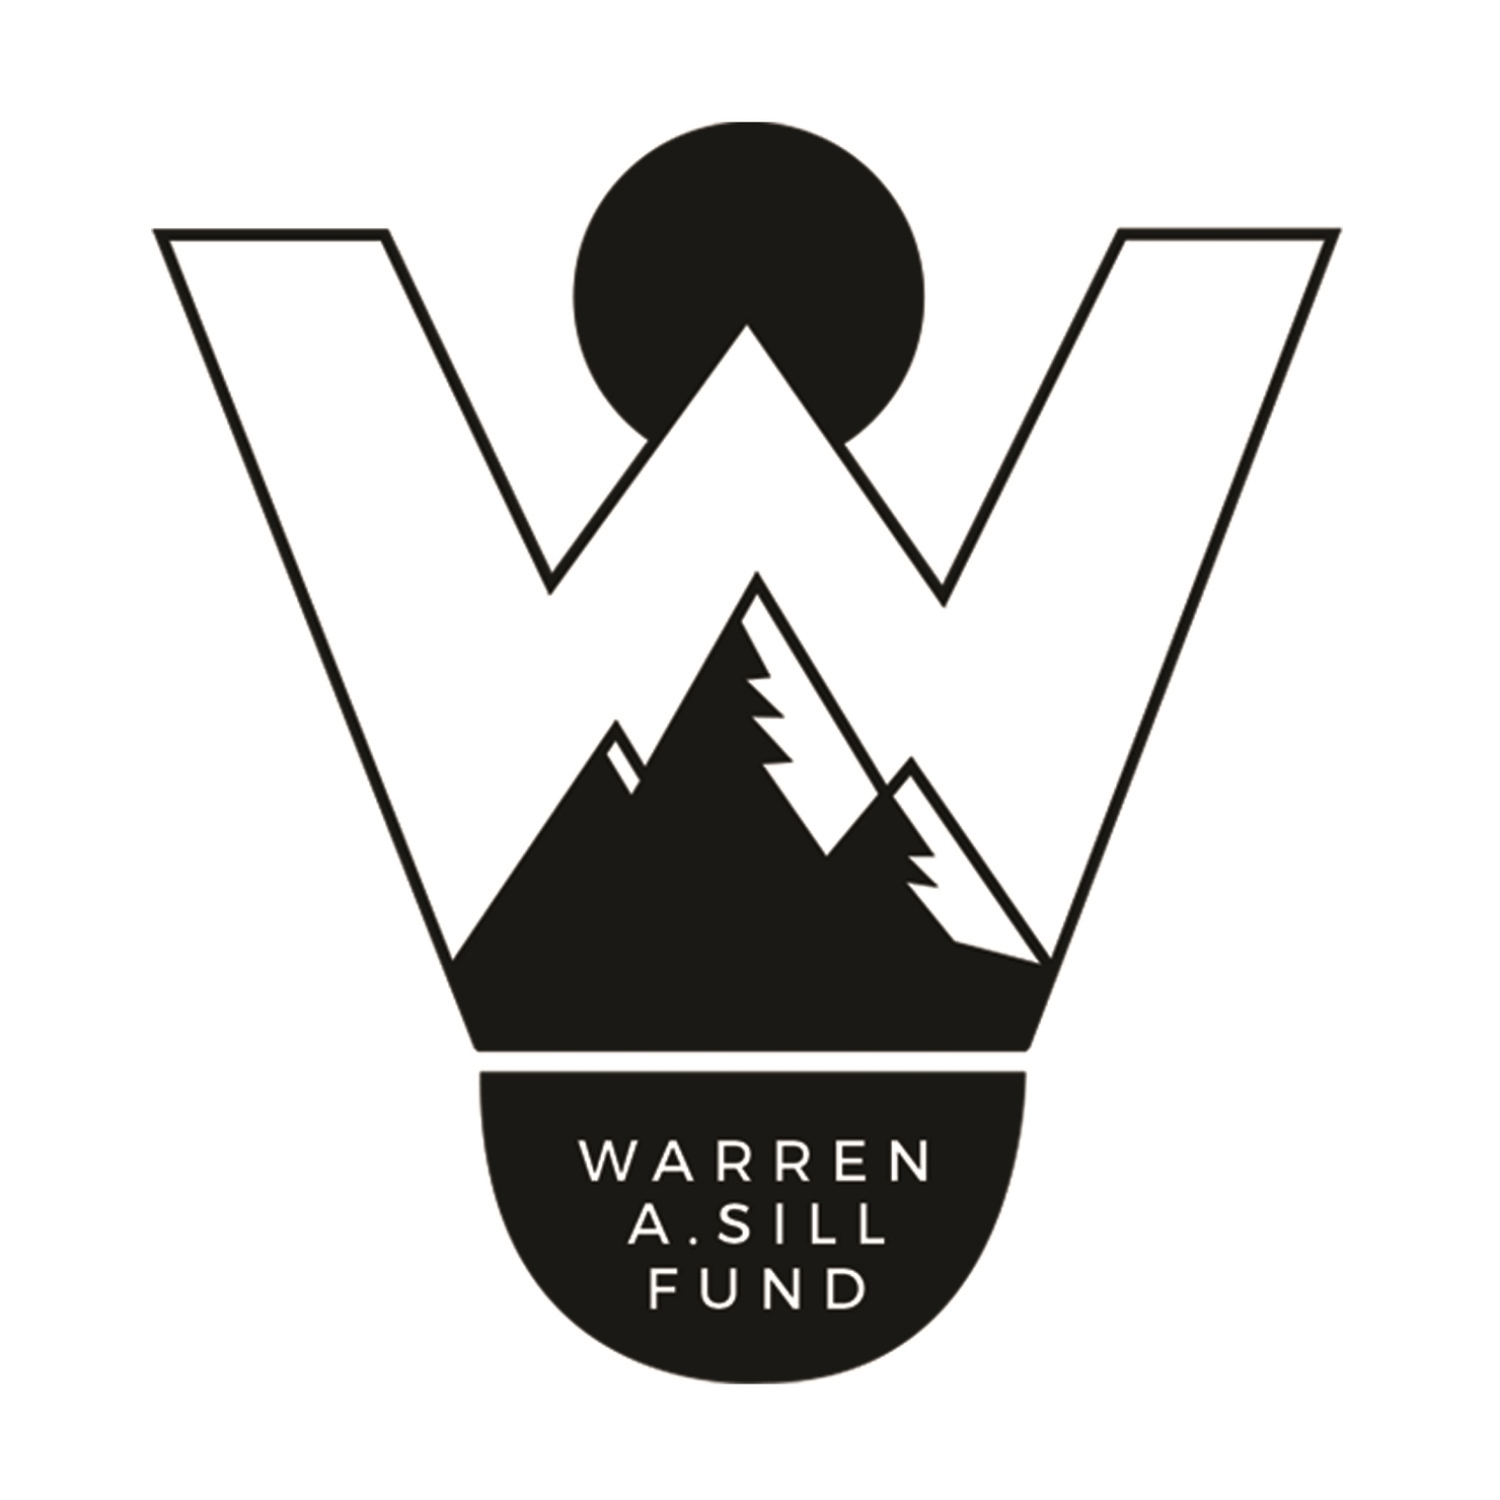 The Warren A. Sill Fund